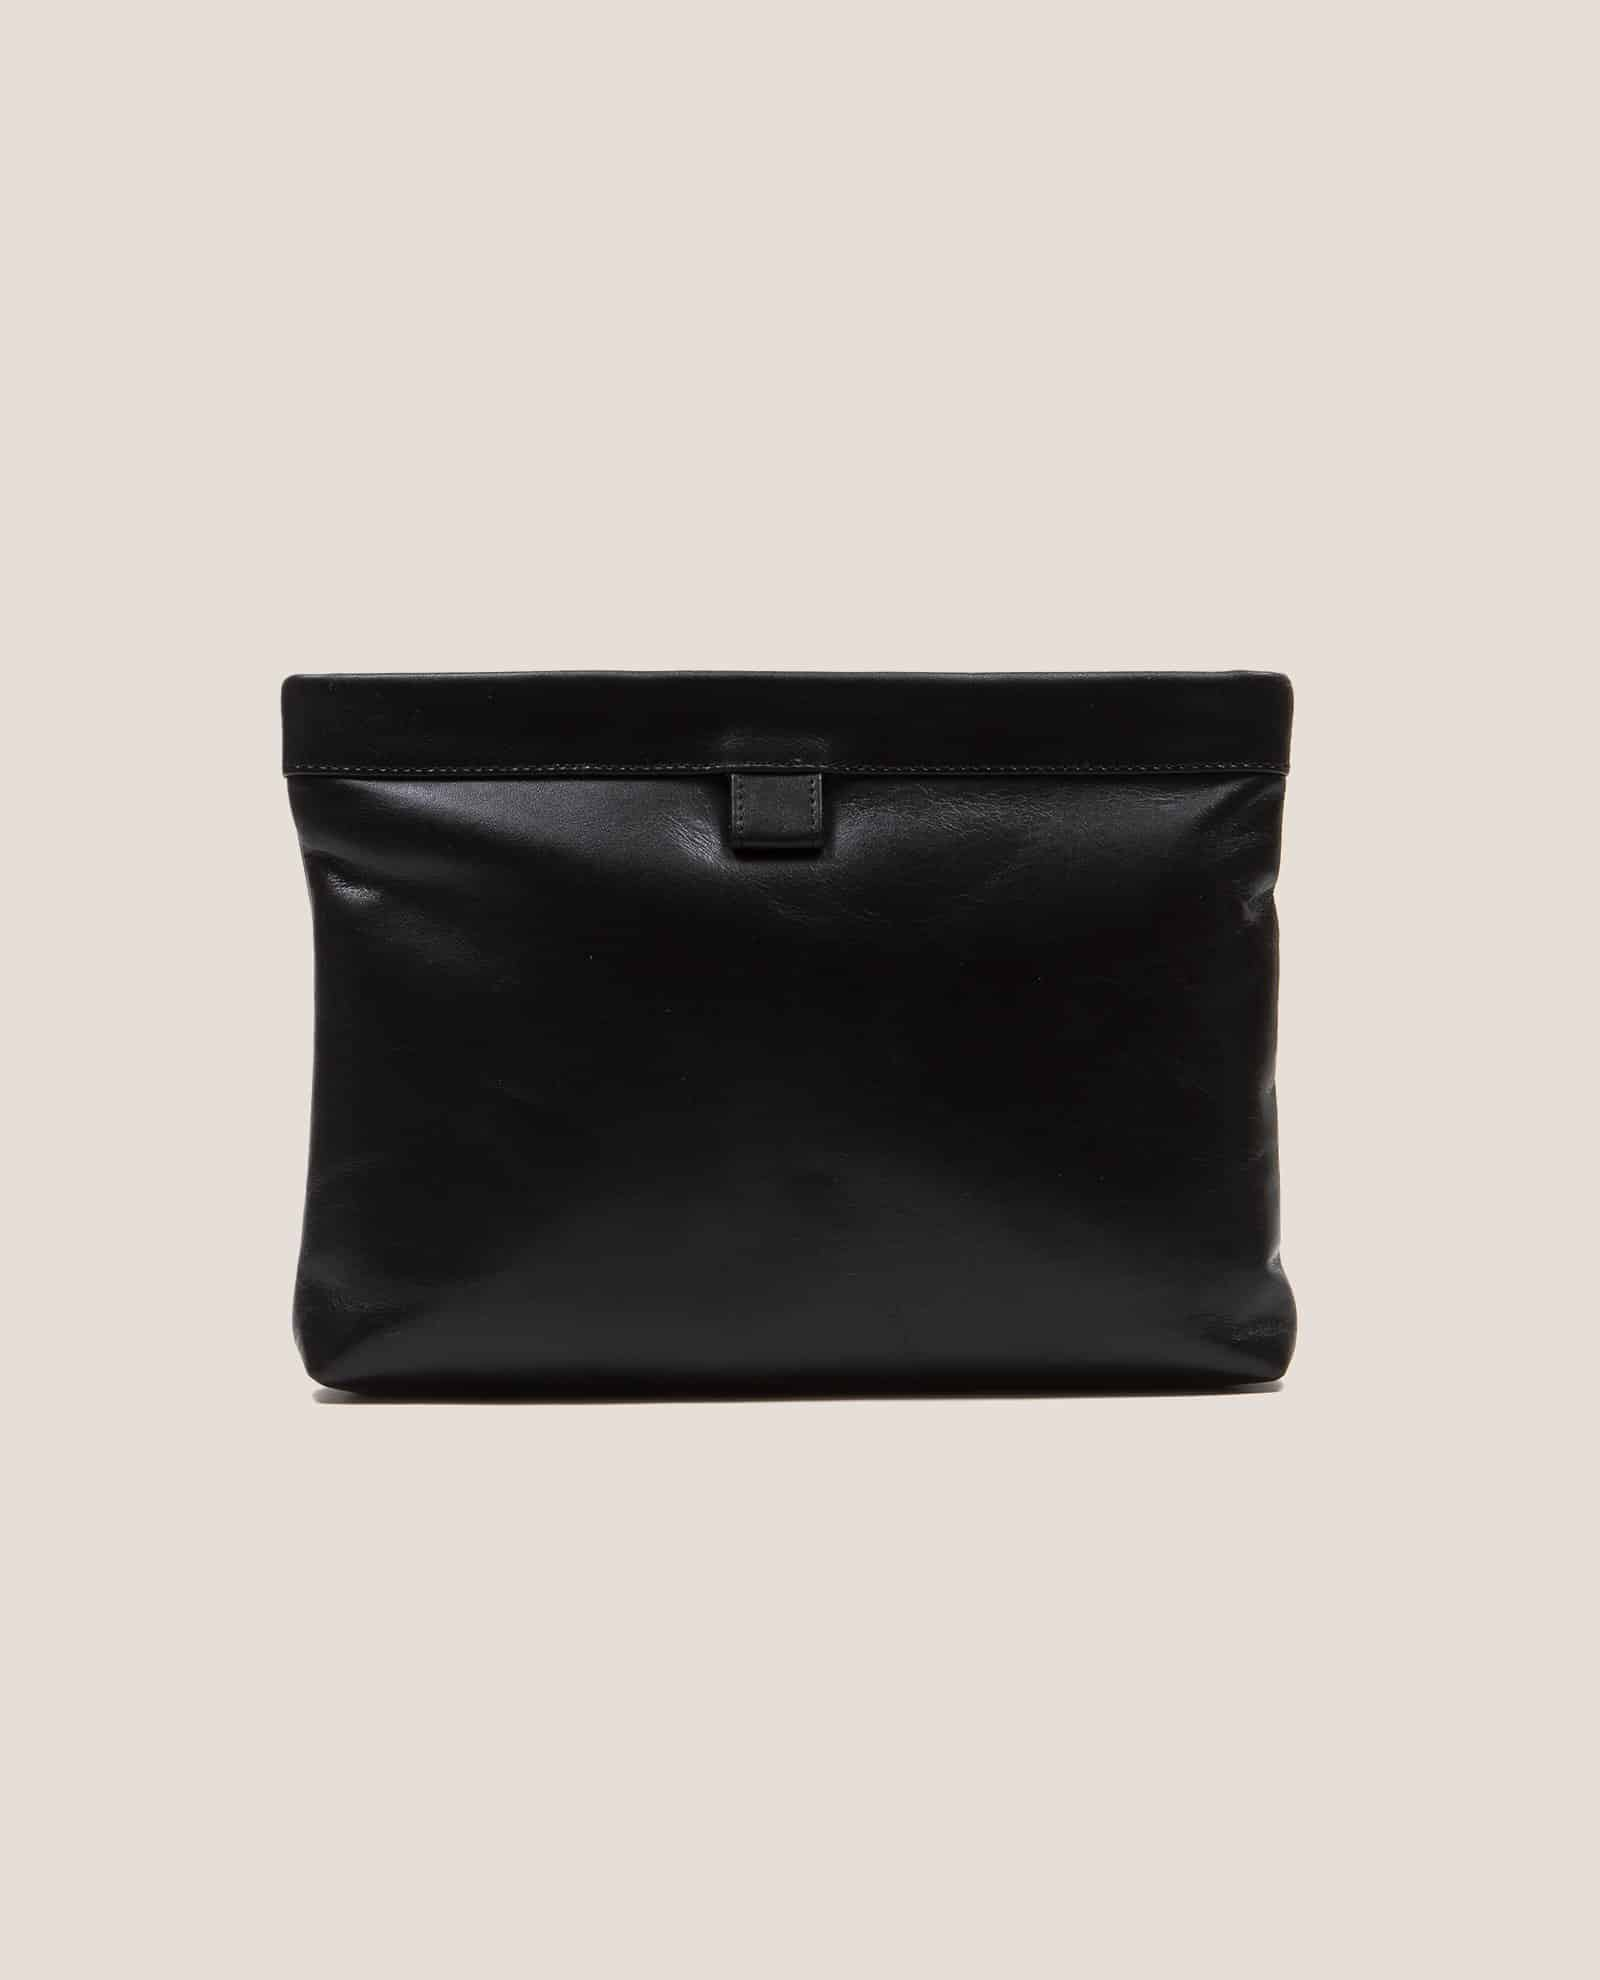 Clutch, handbag, Marlen black soft Napa (ref #MPN-28) Petty Things